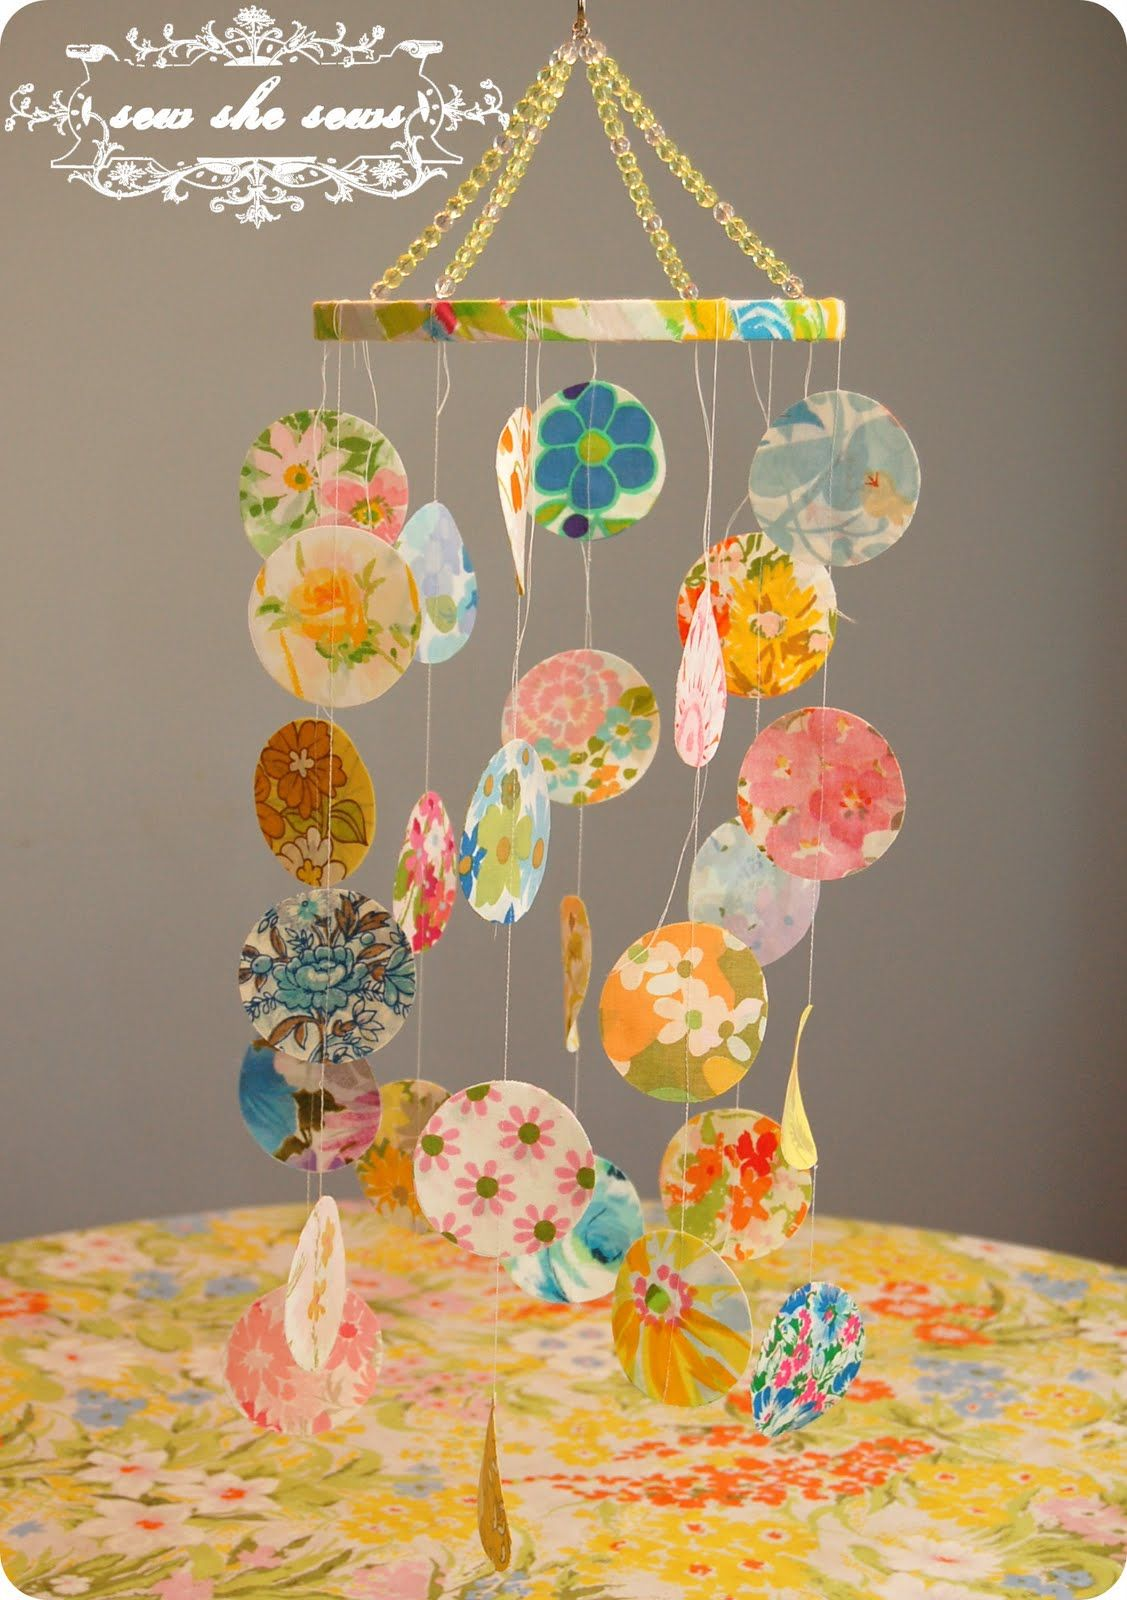 The Vintage Sheet Blog: Baby Week- Featuring a Baby Mobile + Tutorial